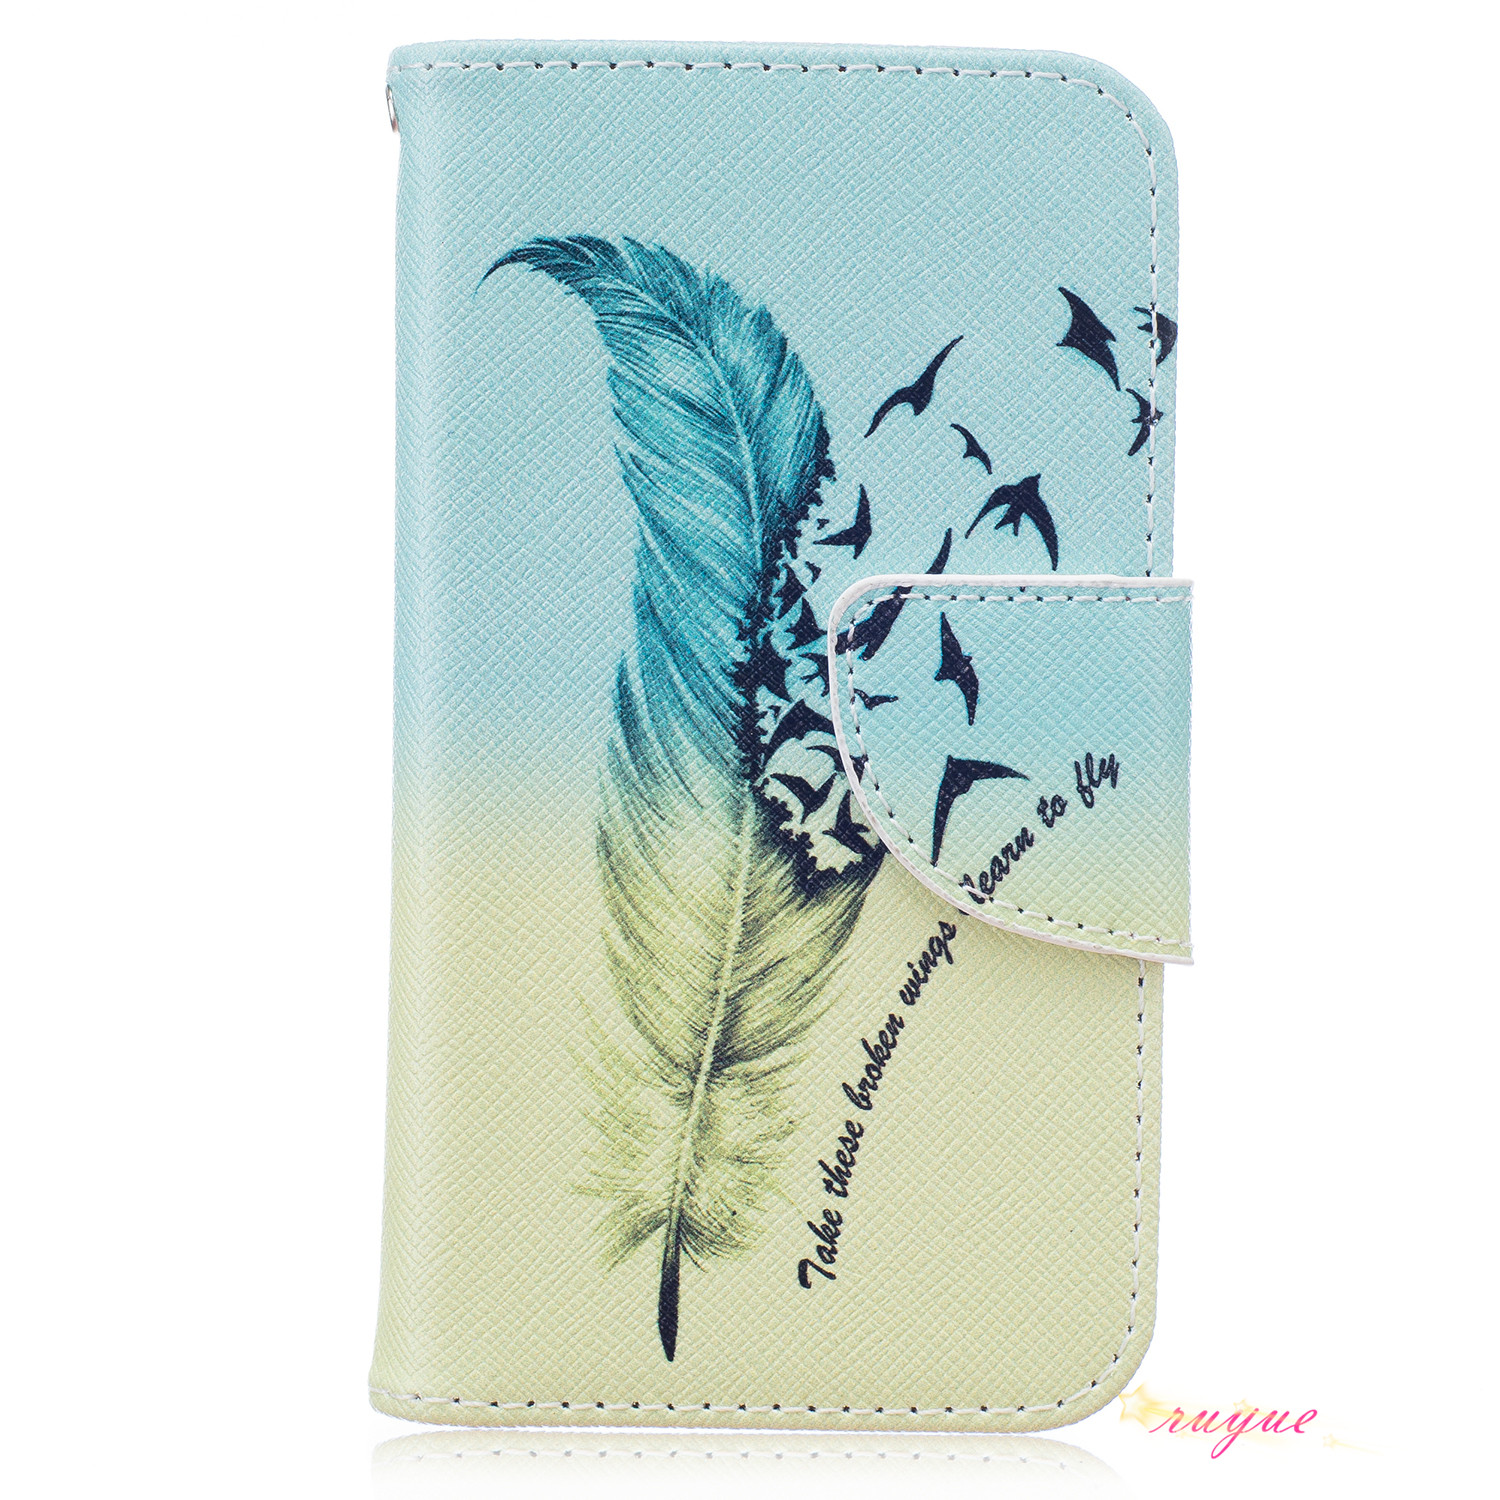 2016 Hot Phone Case Fundas for Samsung Galaxy J1 MINI Style Magnetic Flip Wallet PU Leather Cover Flip Card Slots accessories